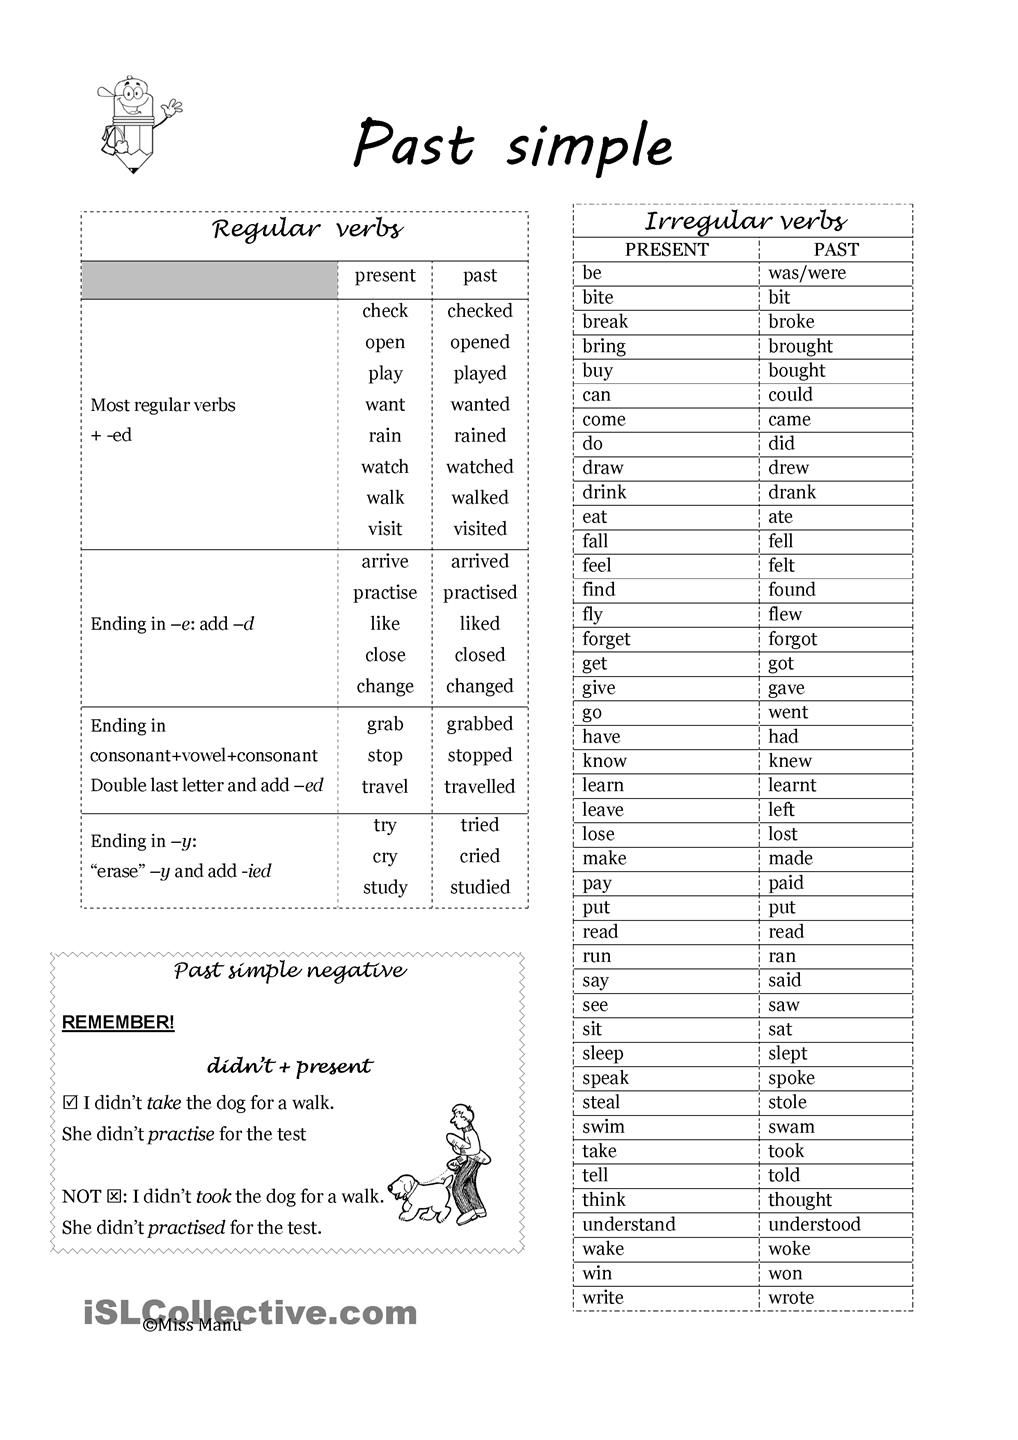 Past simple: regular and irregular verbs | ESL worksheets of the day ...